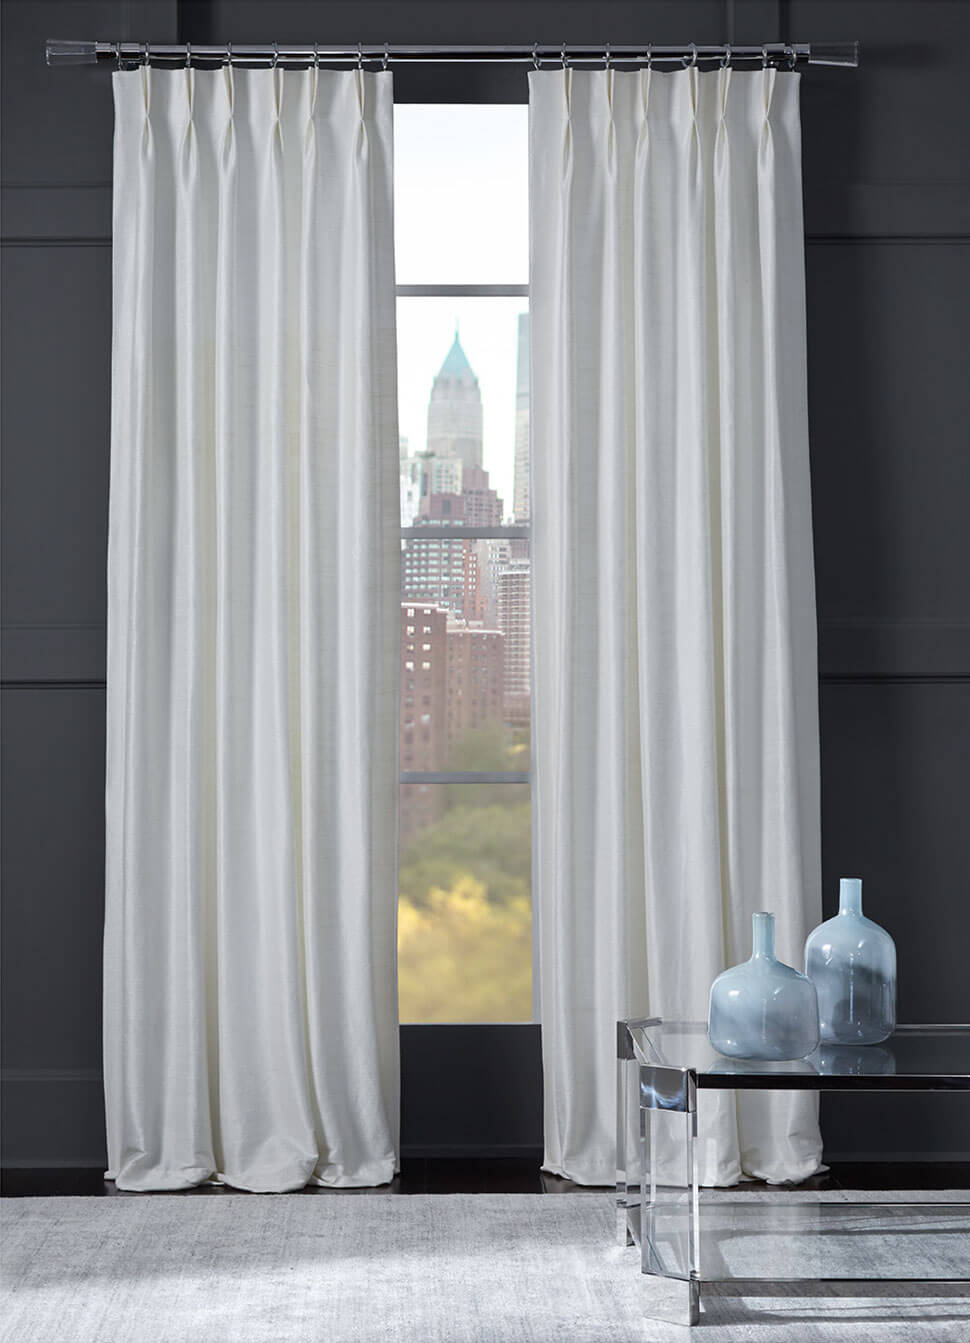 Legacy drapery collection: Woven Texture Strie